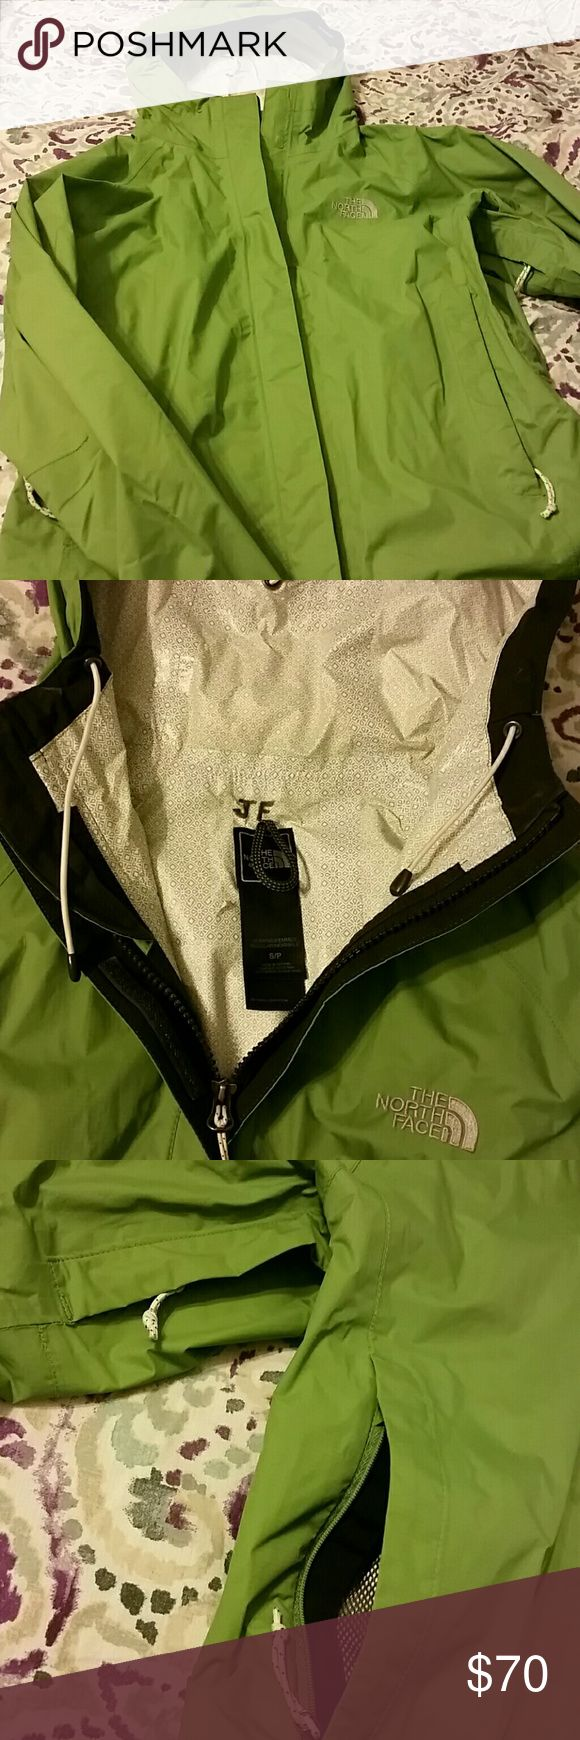 "THE NORTH FACE Women's hooded raincoat Lime green, full zip, 2 front pockets, 2 underarm pockets, velcro wrists, NO STAINS OR TEARS, ""JF"" INITIALS ON INSIDE AT NECK (see picture) The North Face Jackets & Coats Trench Coats #RaincoatsForWomenTheNorthFace"